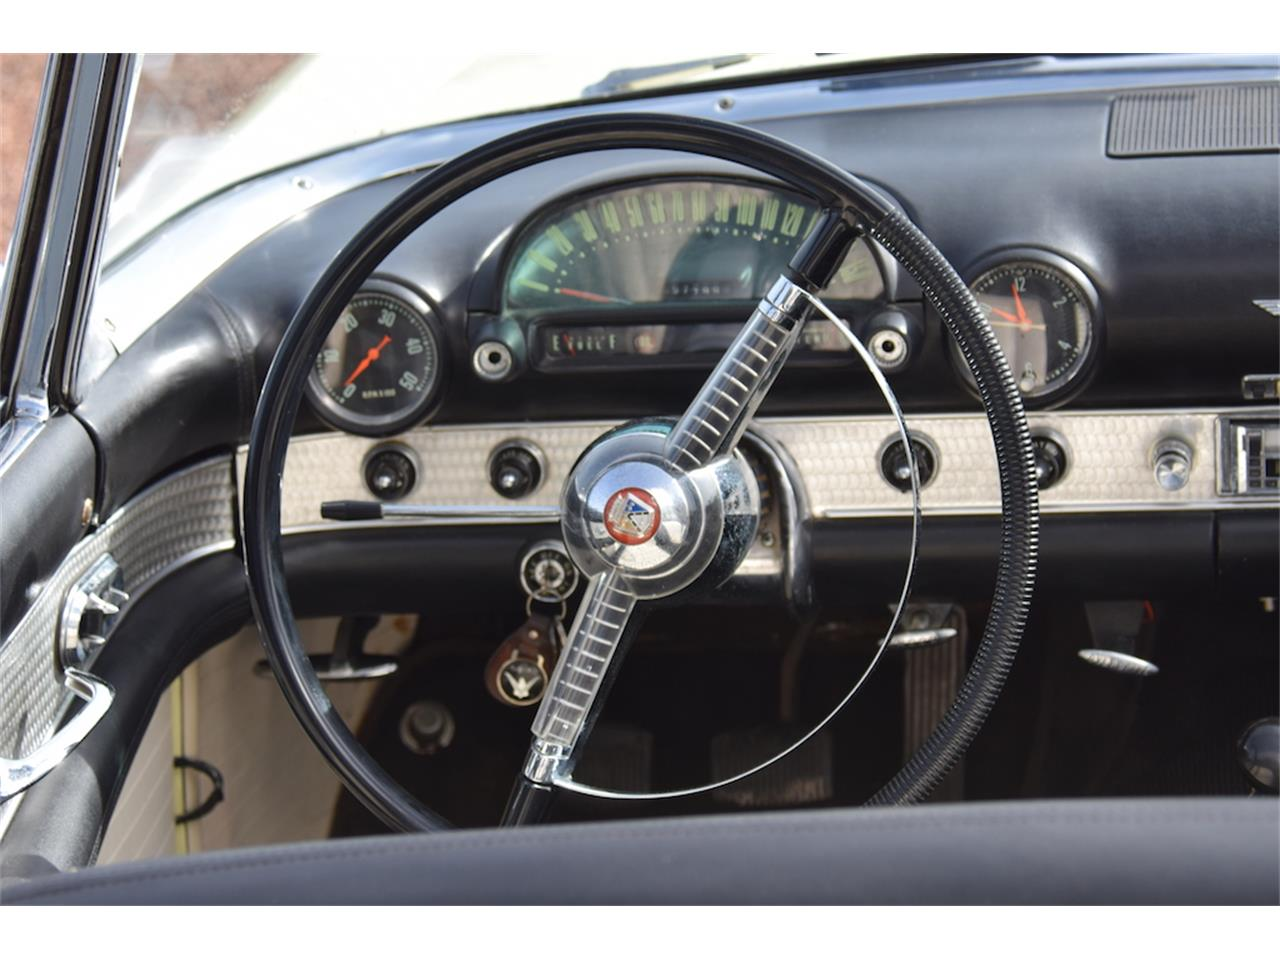 Large Picture of Classic 1955 Ford Thunderbird - $48,000.00 Offered by a Private Seller - HHJ2